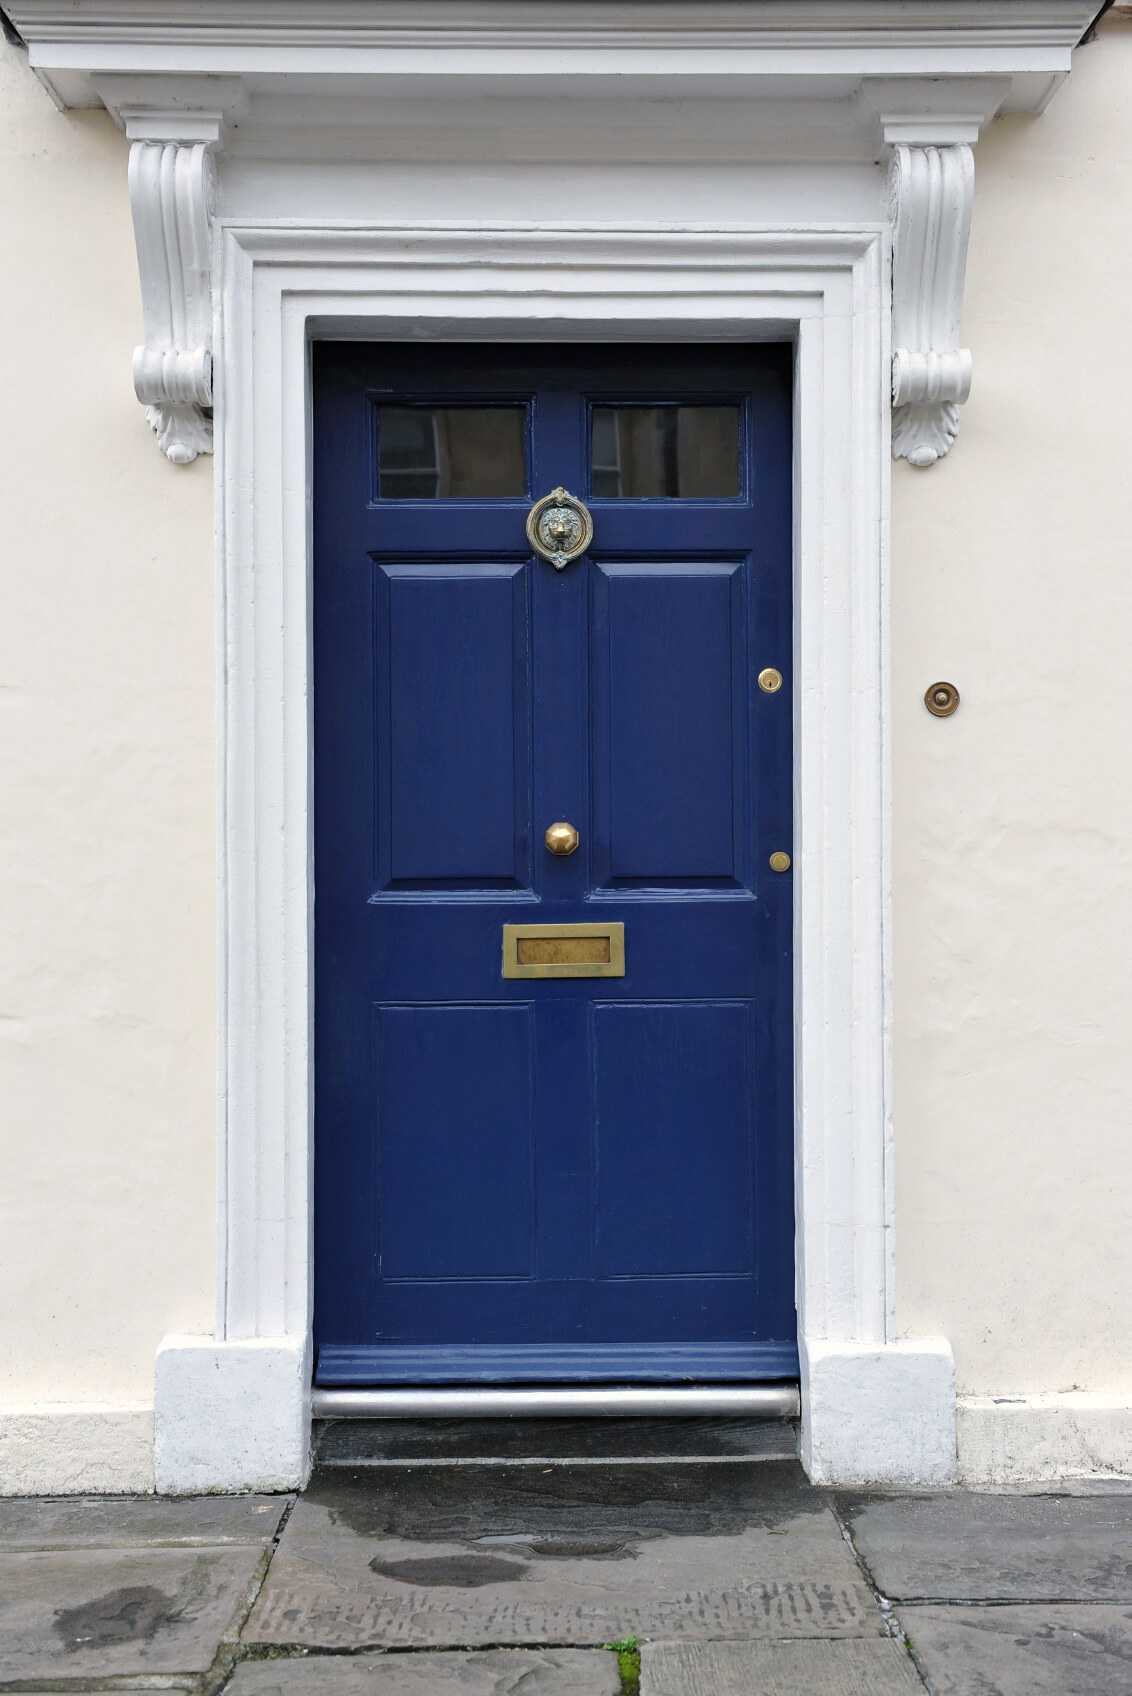 The main entrance has a white concrete facade. It has a blue door with a shiny brass knob right in the middle of it. The door also has a sculpted lion brass door knocker, lock, doorbell, and mail slot. The top part of the front door has glass panels. The door has a white brick molding.